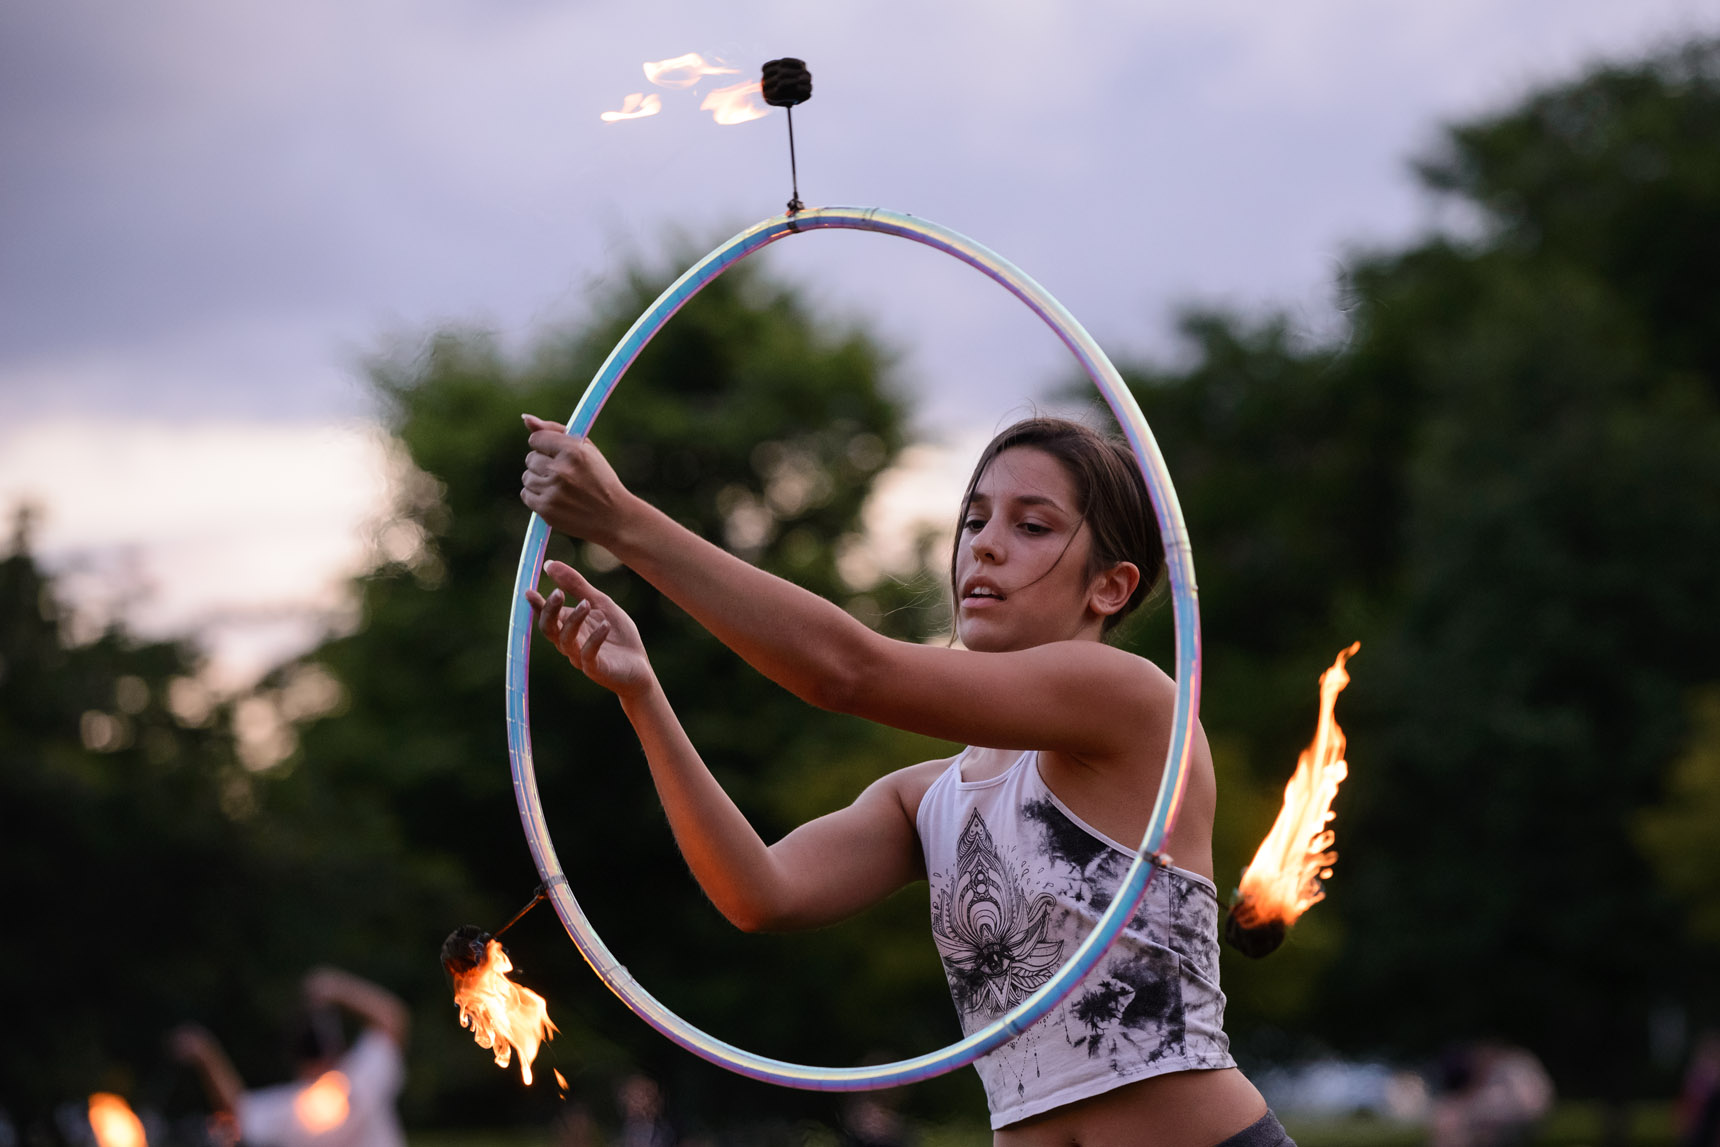 Chicago Full Moon Jam 2018 - Fire performance near Foster Beach - Photography by Michael Courier